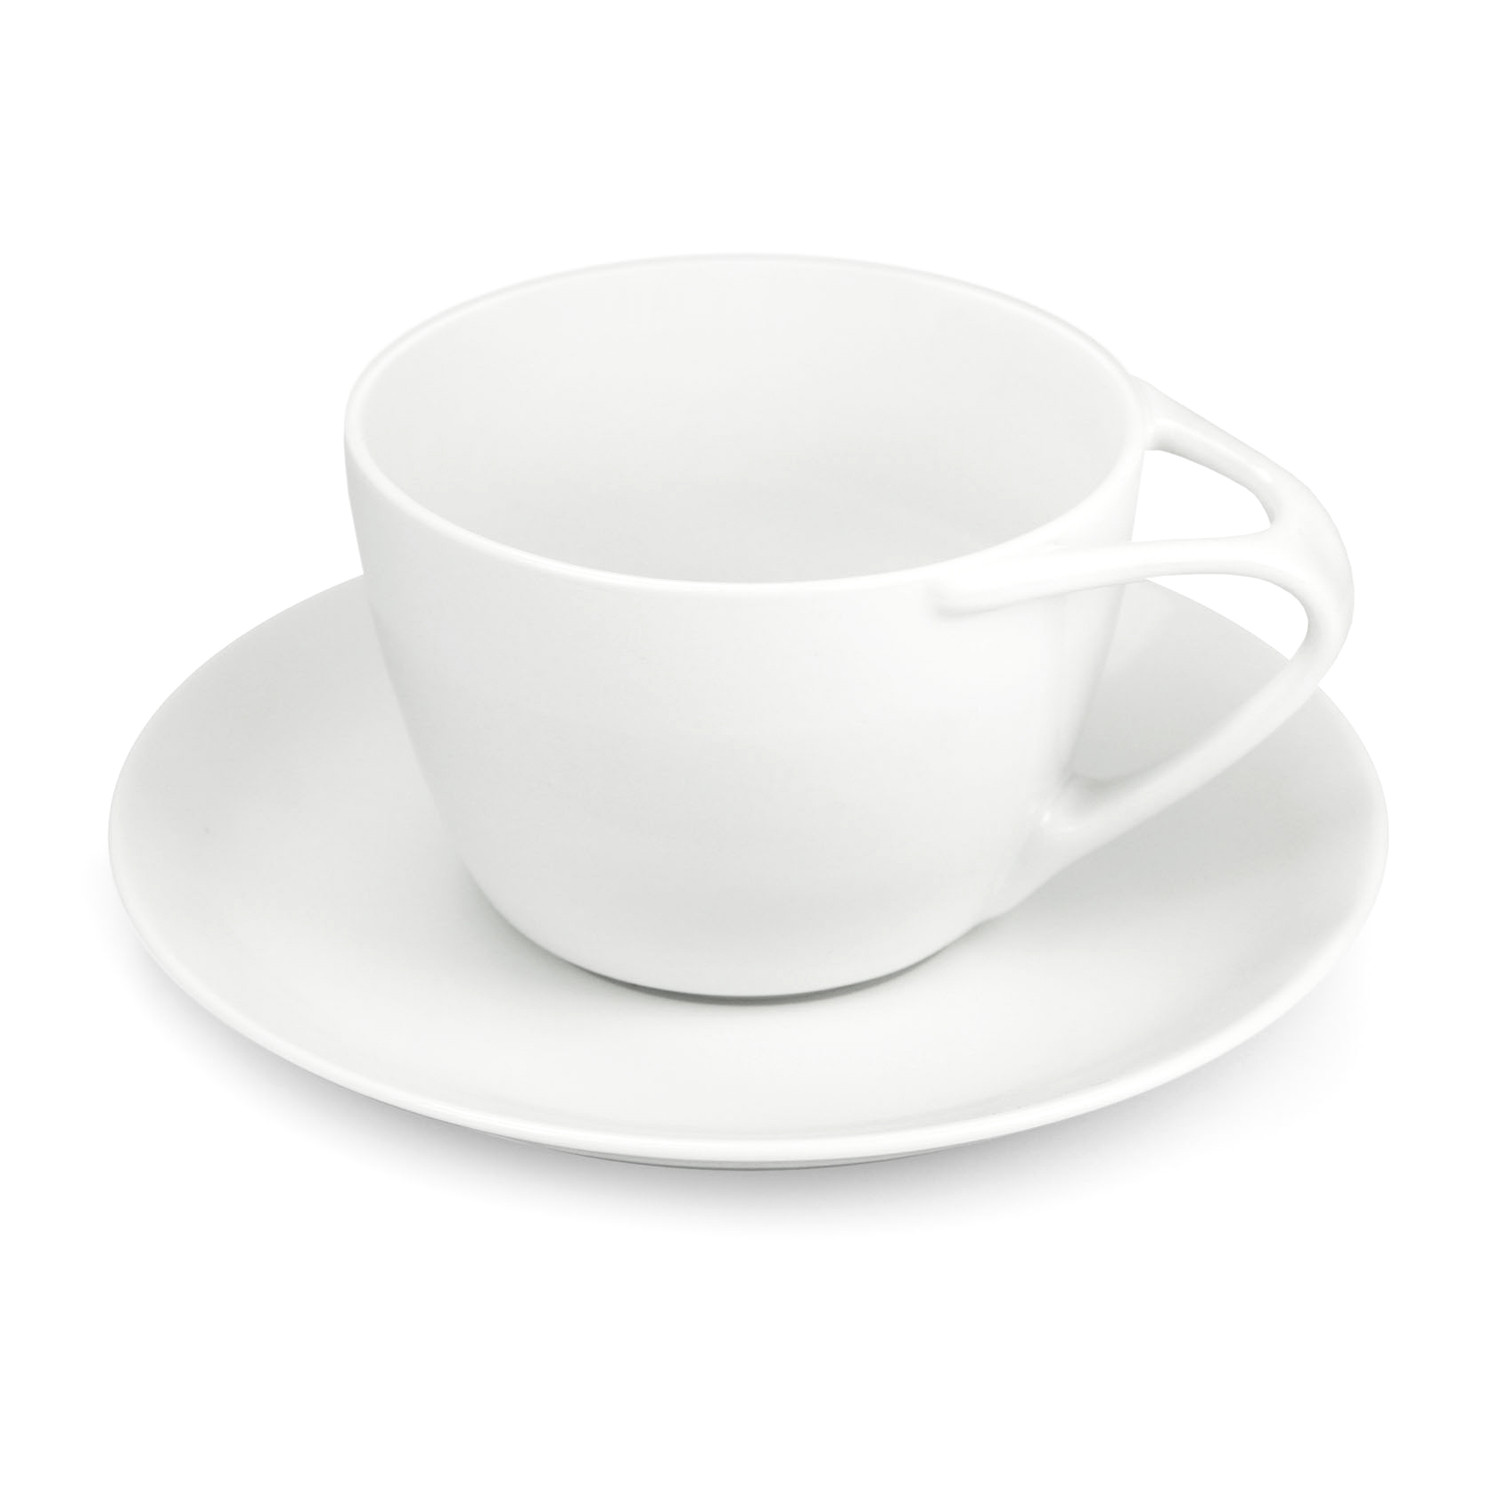 good morning  teacup  saucer  kibardindesign  touch of modern - good morning  teacup  saucer